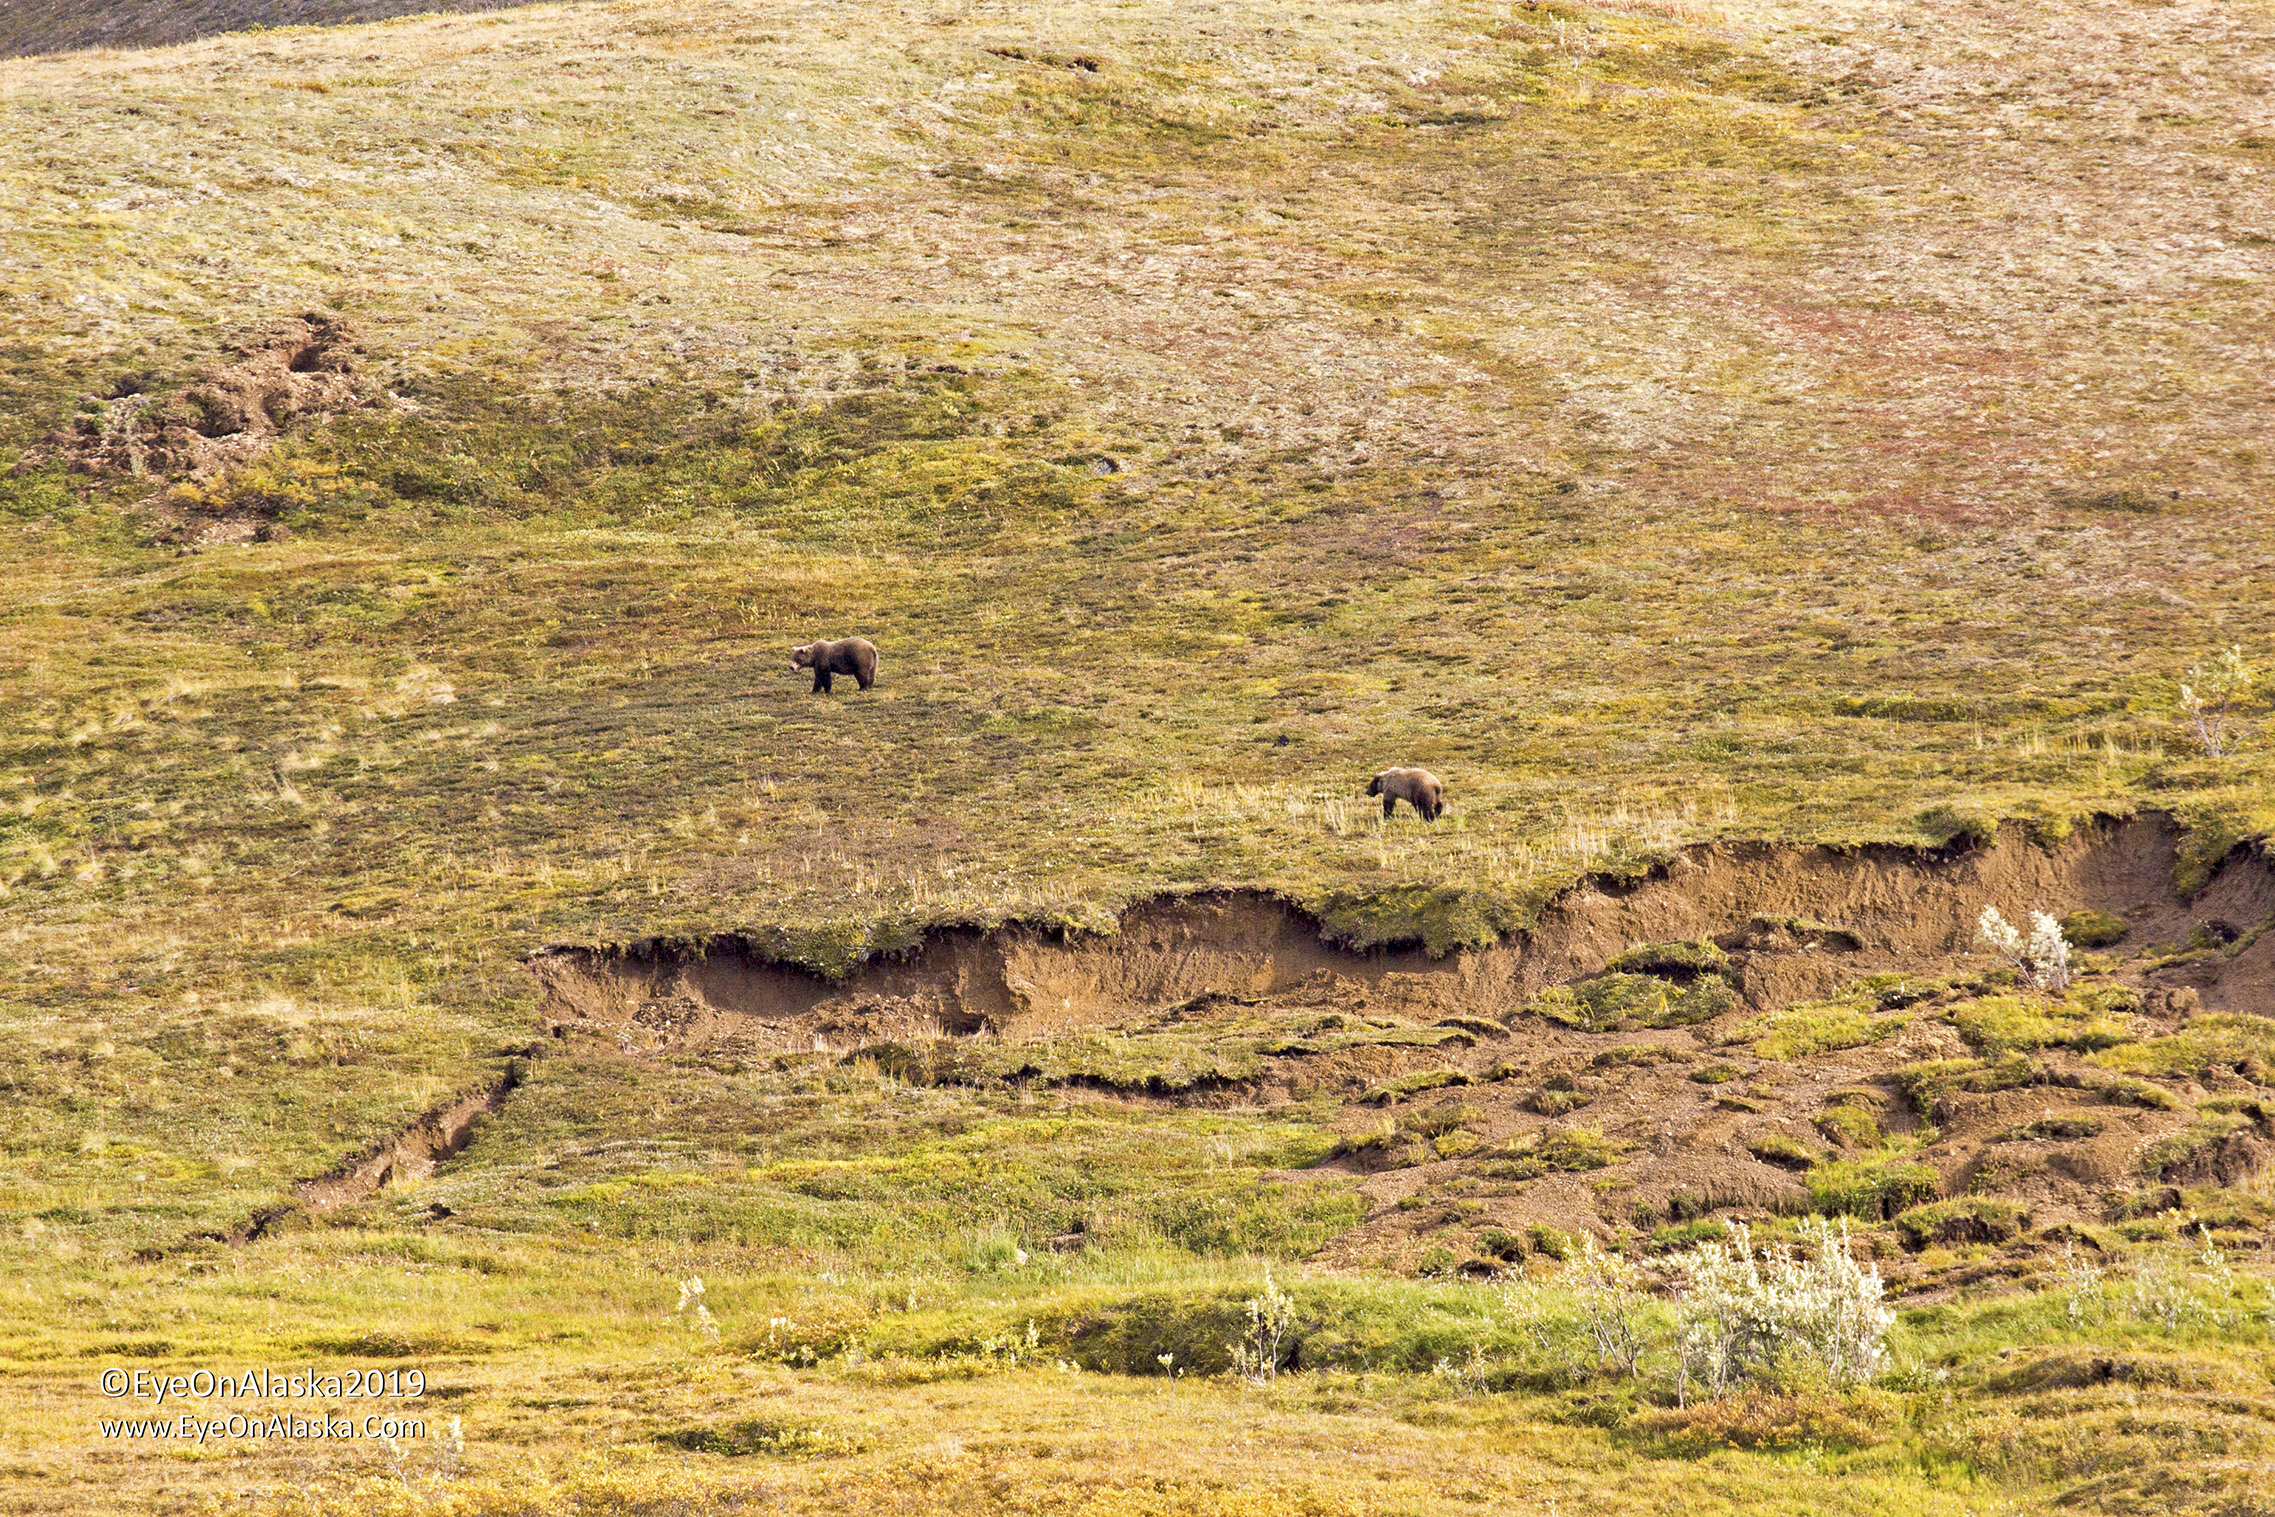 2 more bears in Sable Pass just above a fresh mudslide caused by the heavy rains a week ago.